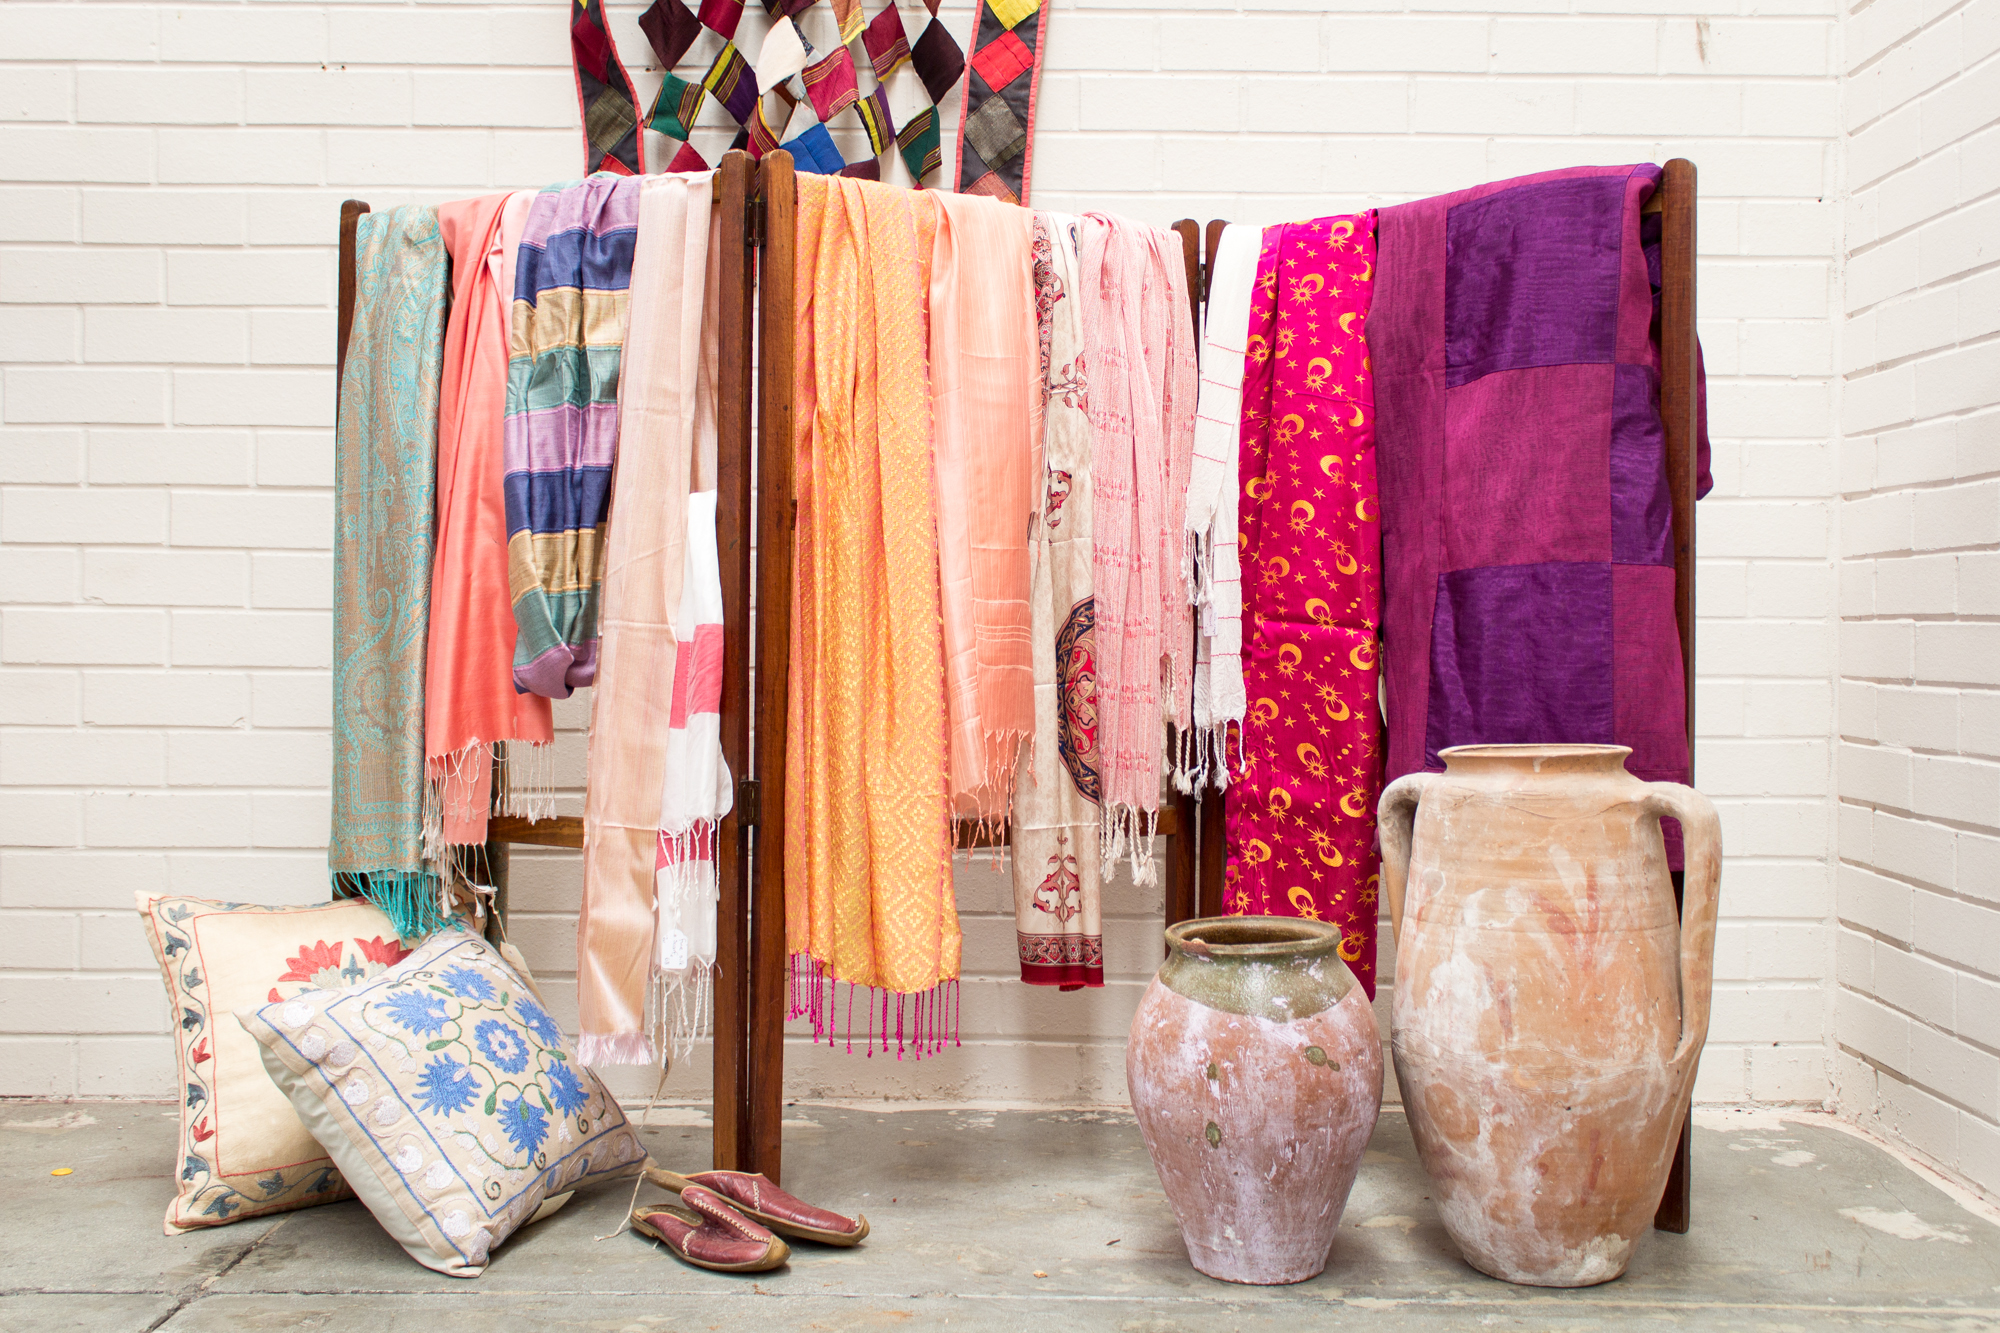 Anatolian Pots and Urns with Embroiled Cushions and and assortion of silk scarves and fabrics